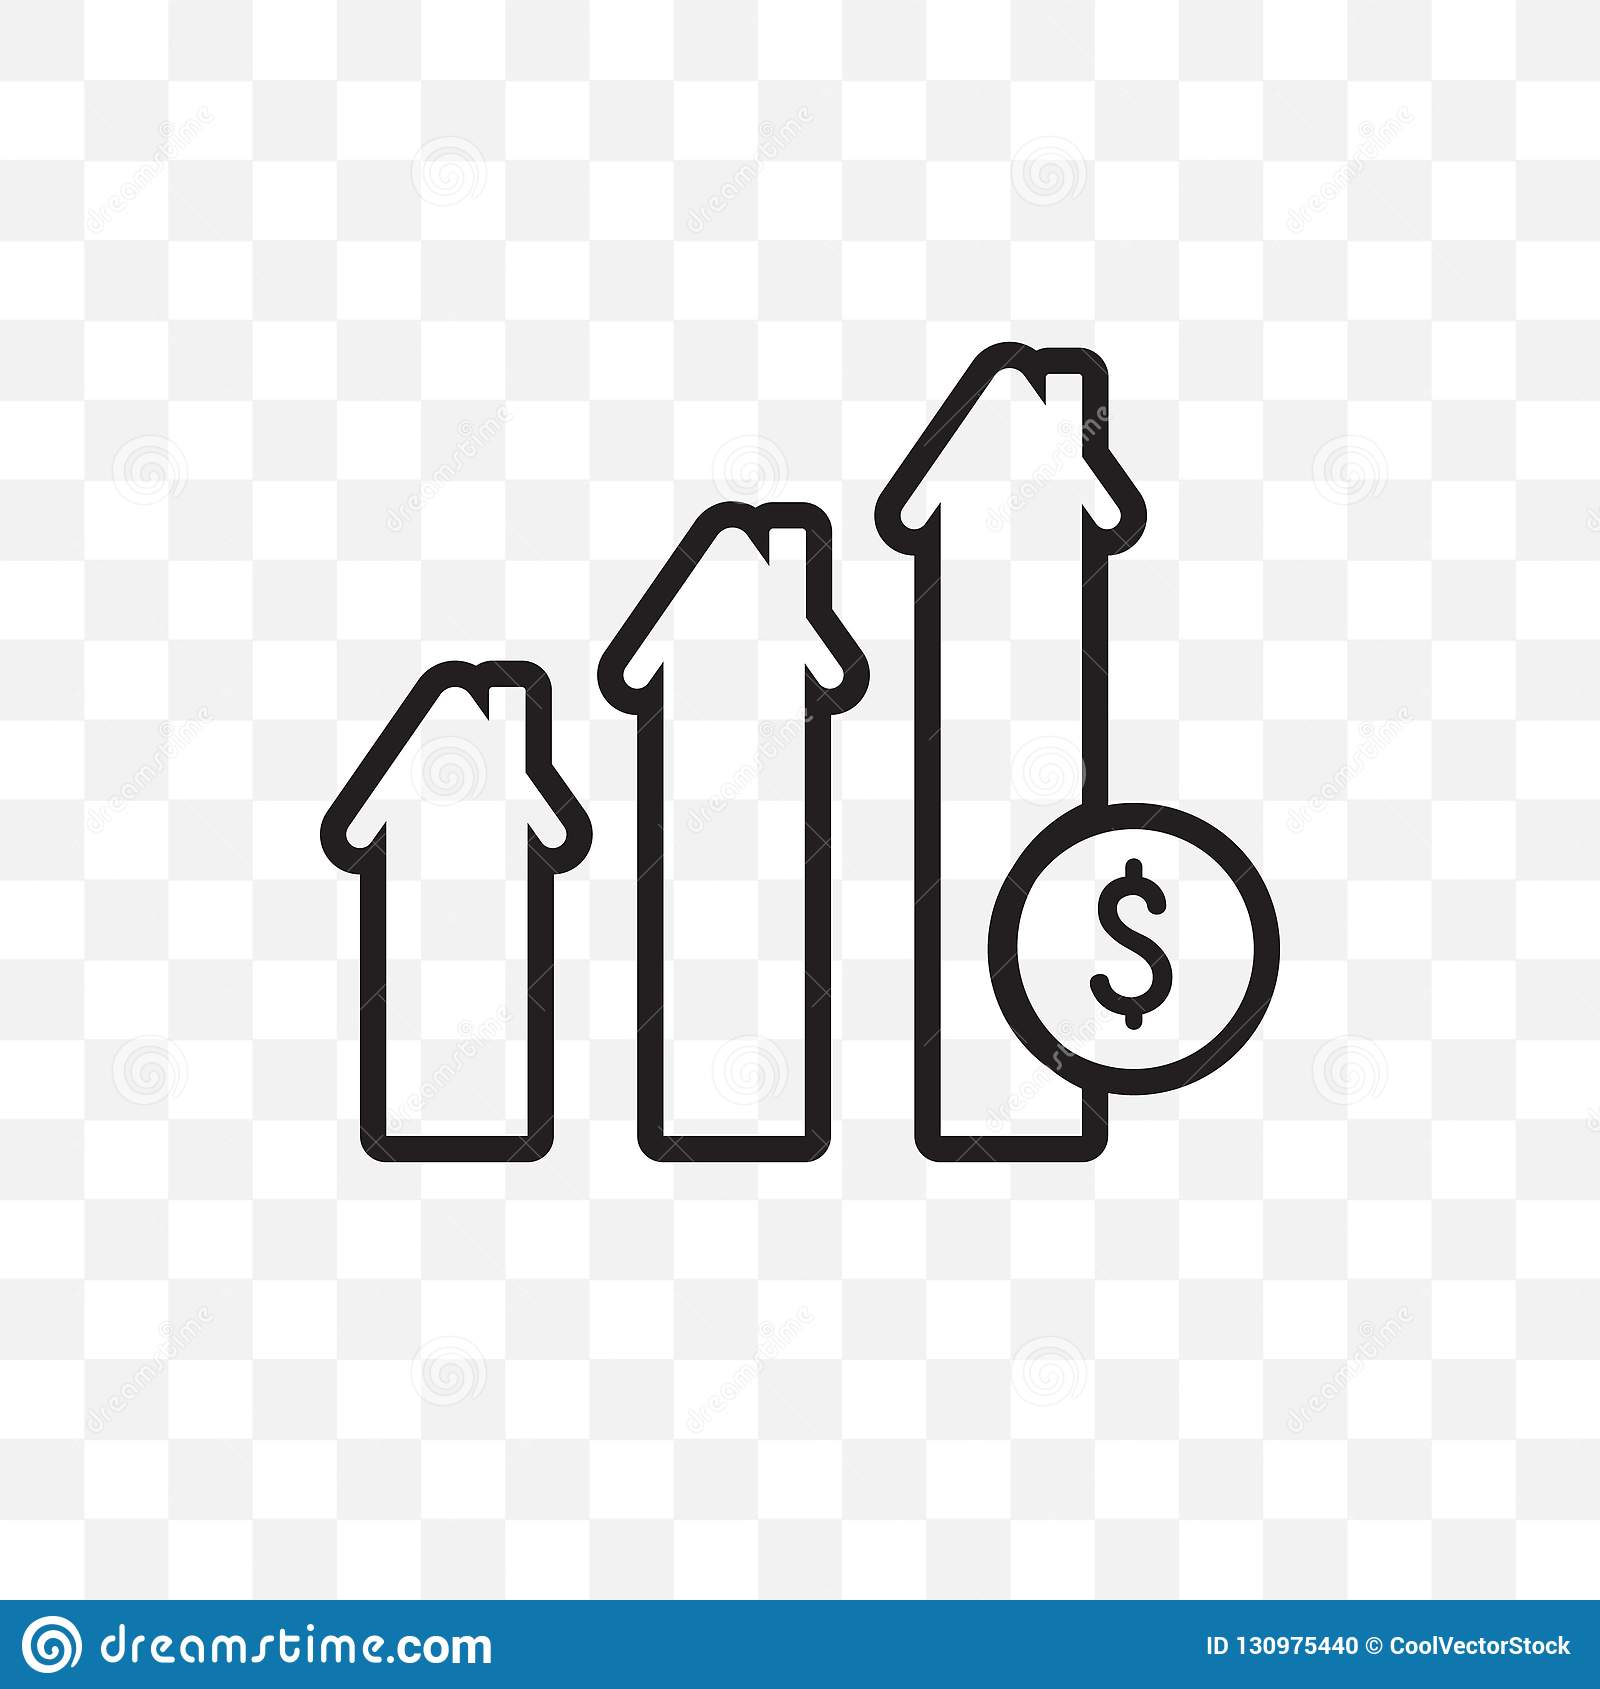 Mortgage Statistics Vector Linear Icon Isolated On Transparent